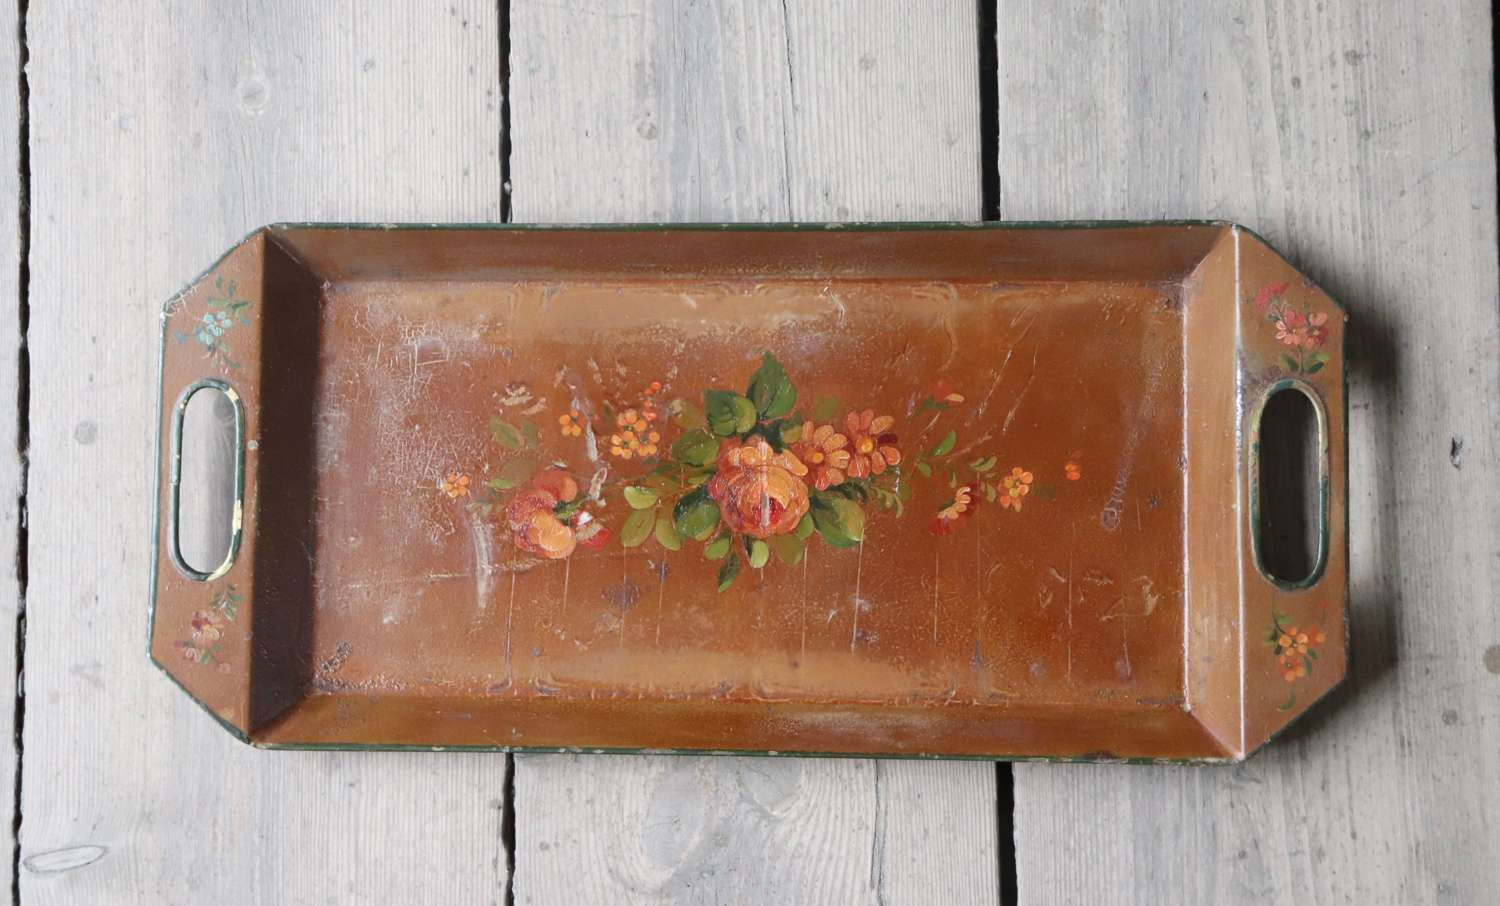 Mid 20th century toleware tray